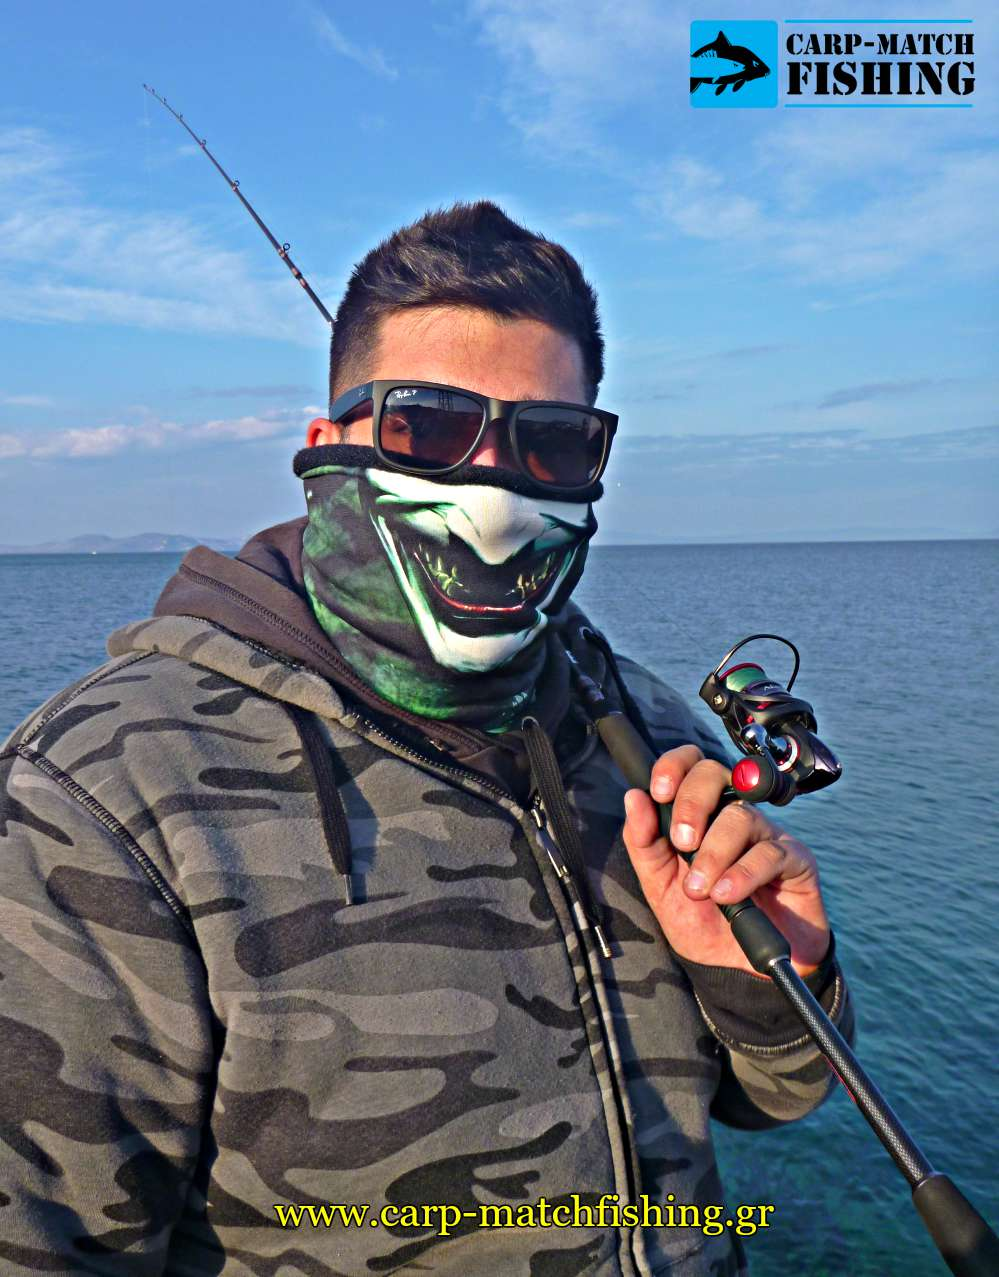 troper maks joker sea angler carpmatchfishing